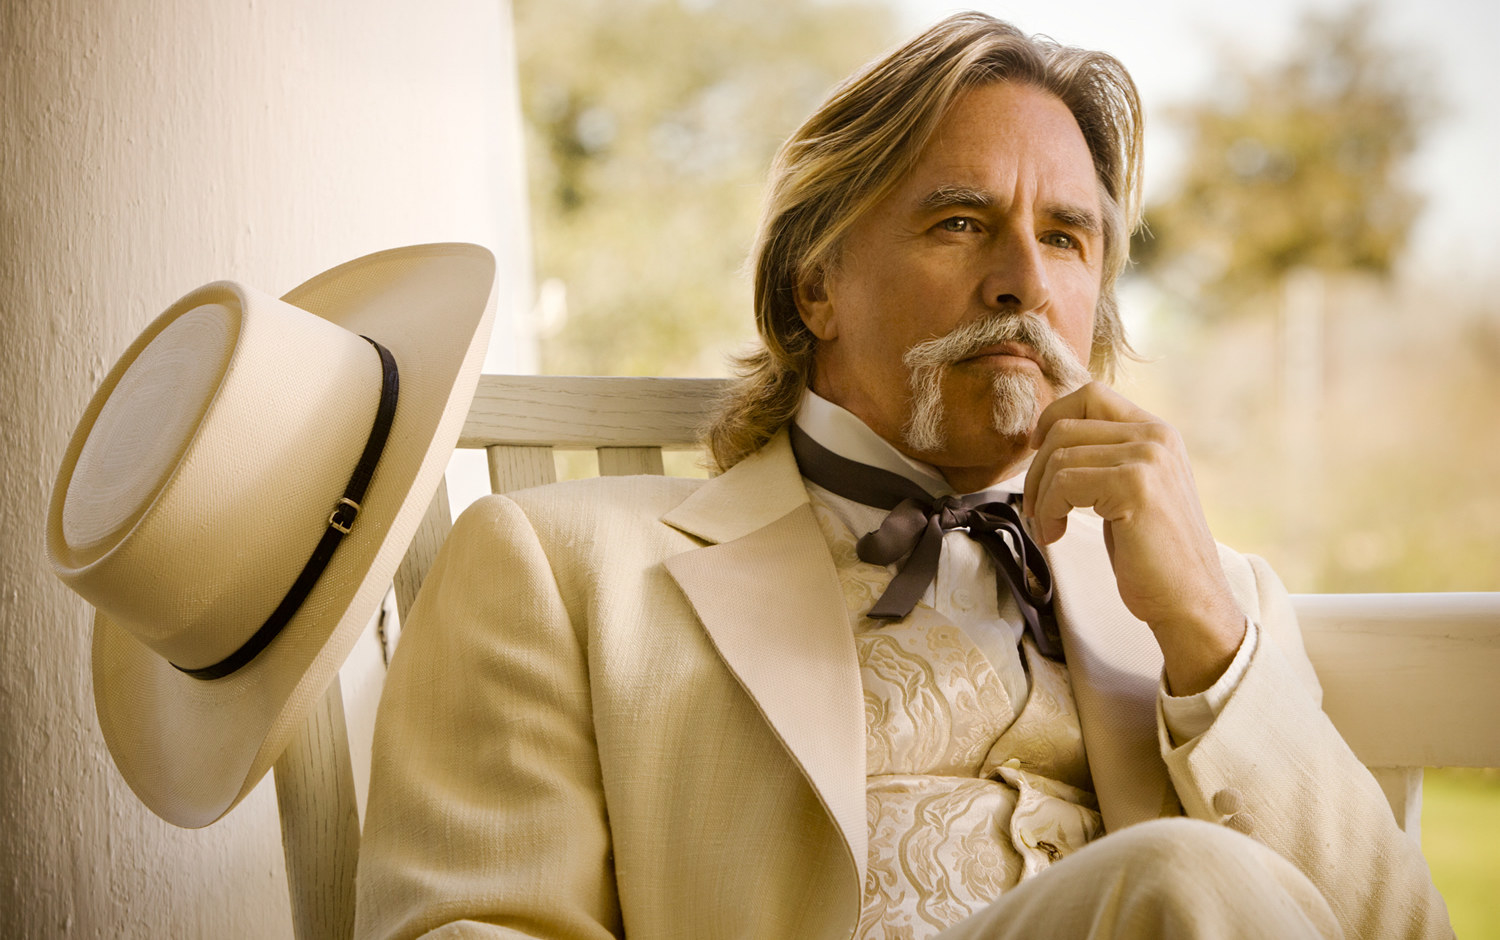 Don Johnson sits on an all white period suit on his porch on a sunny day. From the movie Django Unchained